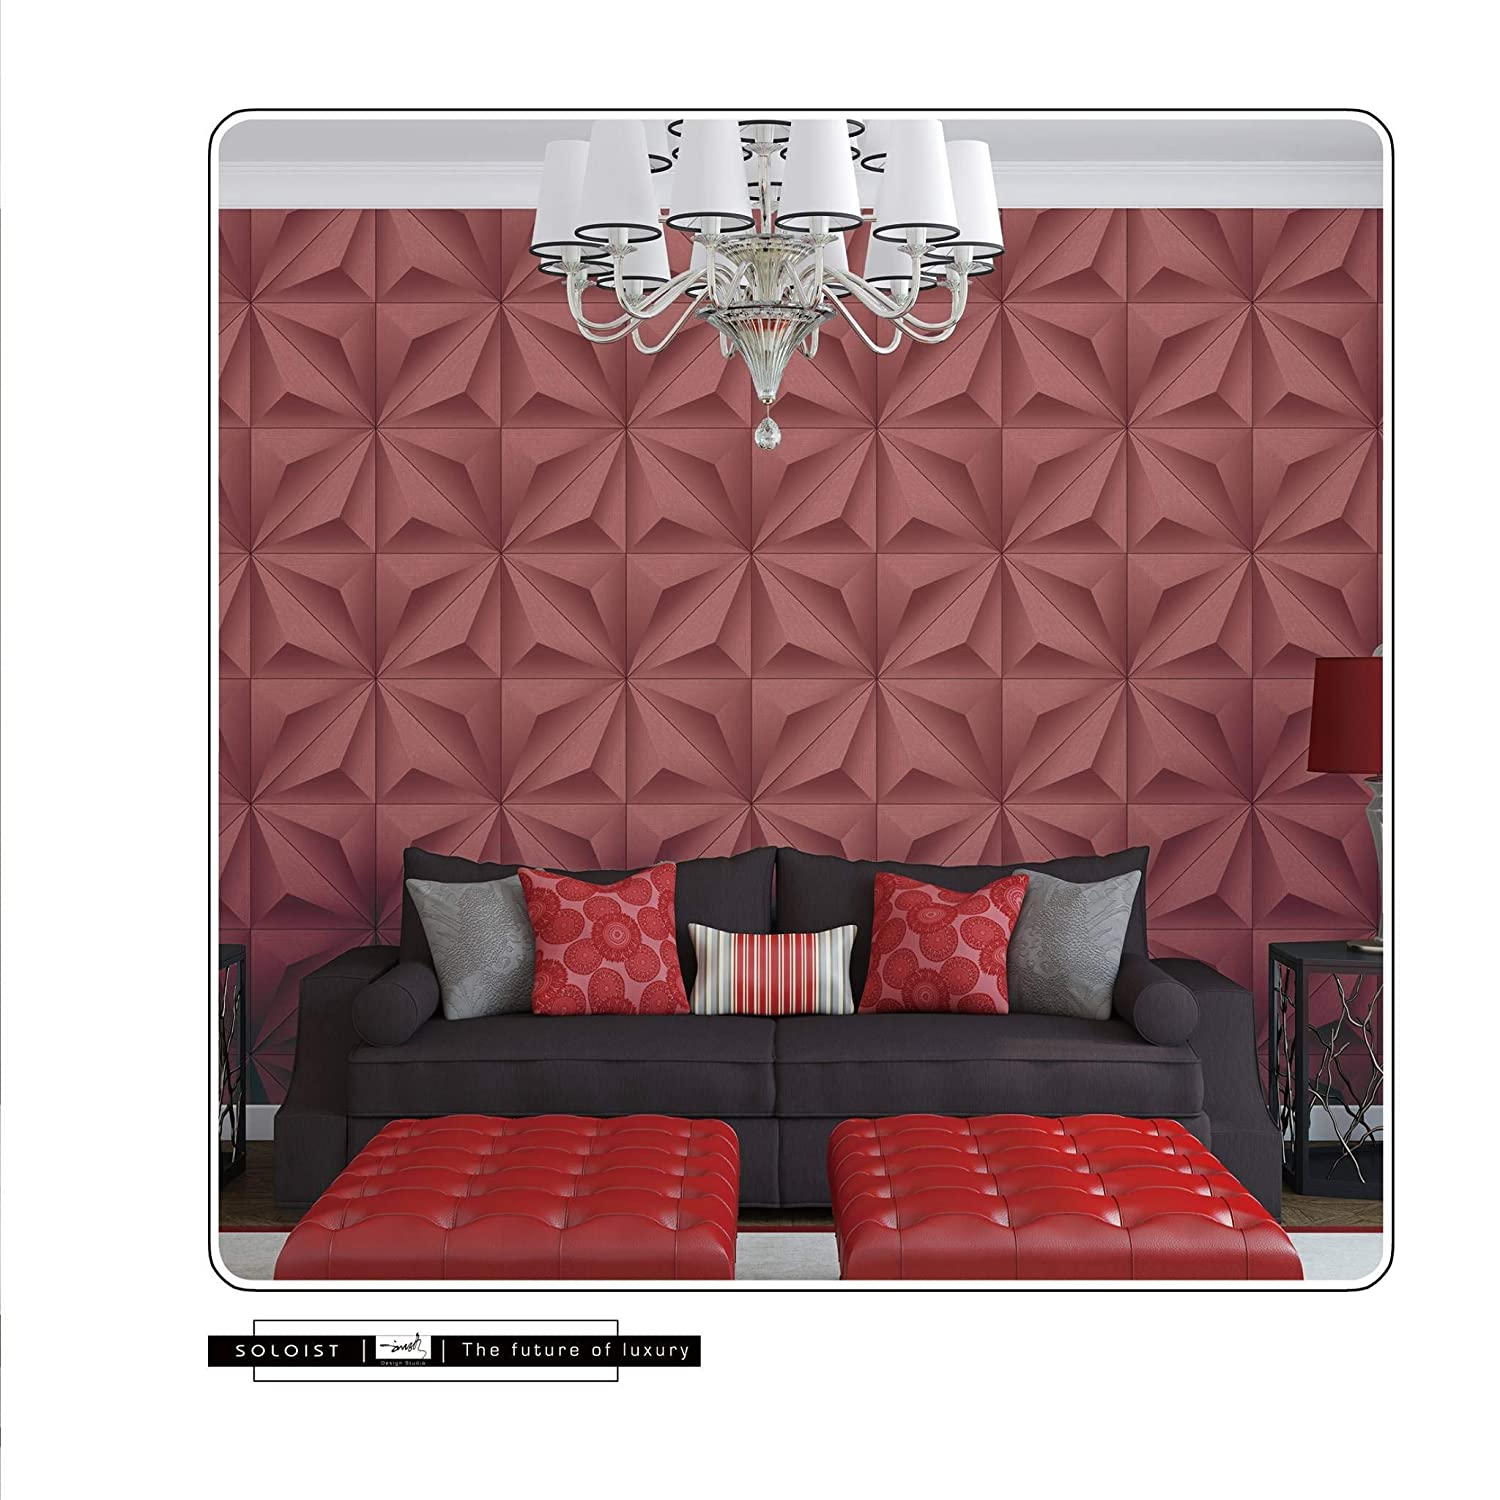 Eurotex 3d Modern Design Wallpaper For Covering Living Room Bedroom Walls Red Pvc Size 0 53x10meter Roll 57 Sq Ft Red Color 3225 Amazon In Home Improvement